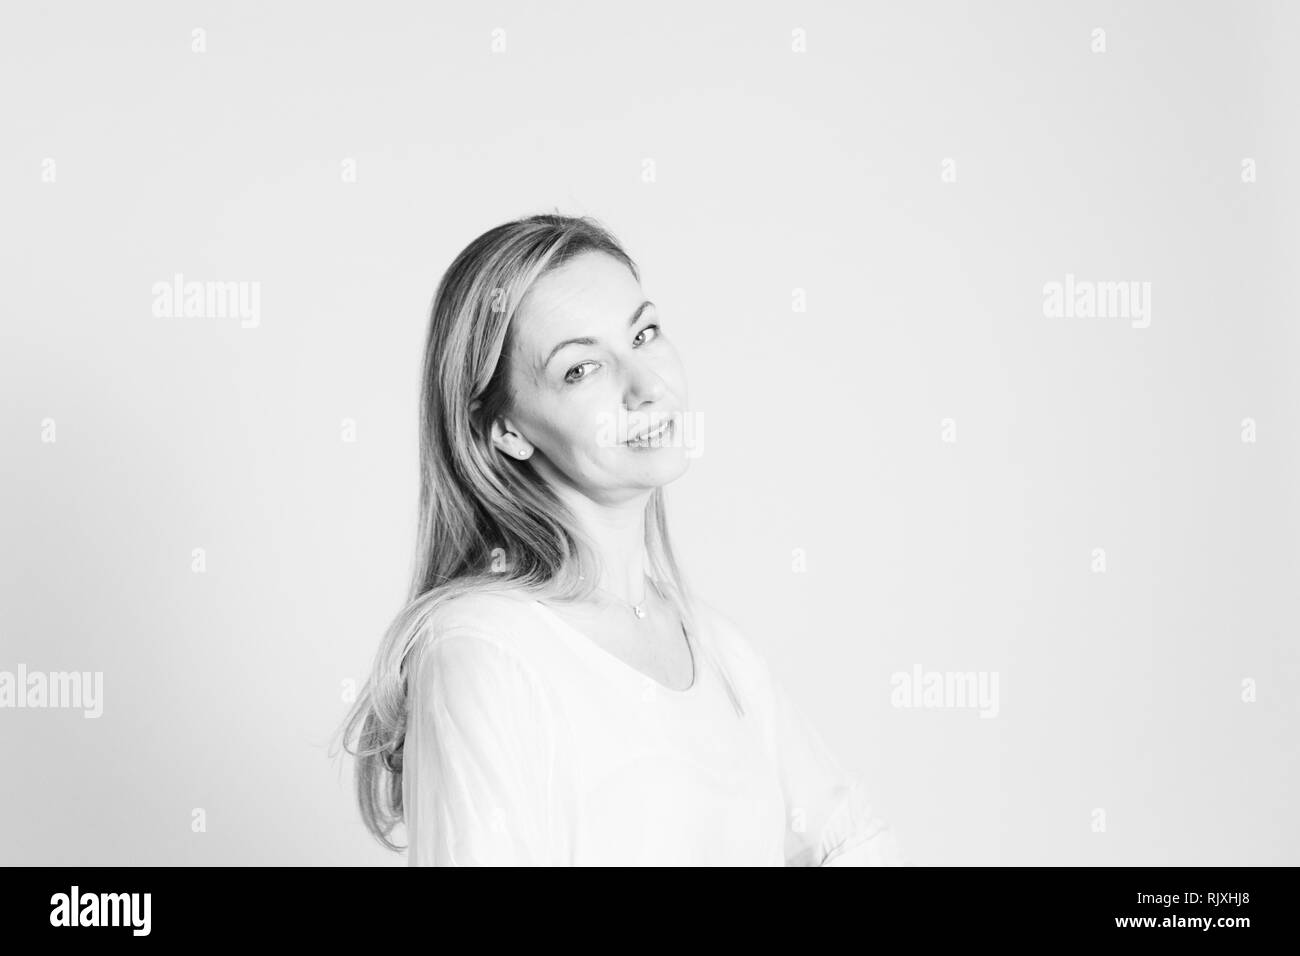 Portrait of beautiful woman in a white dress against white background Stock Photo